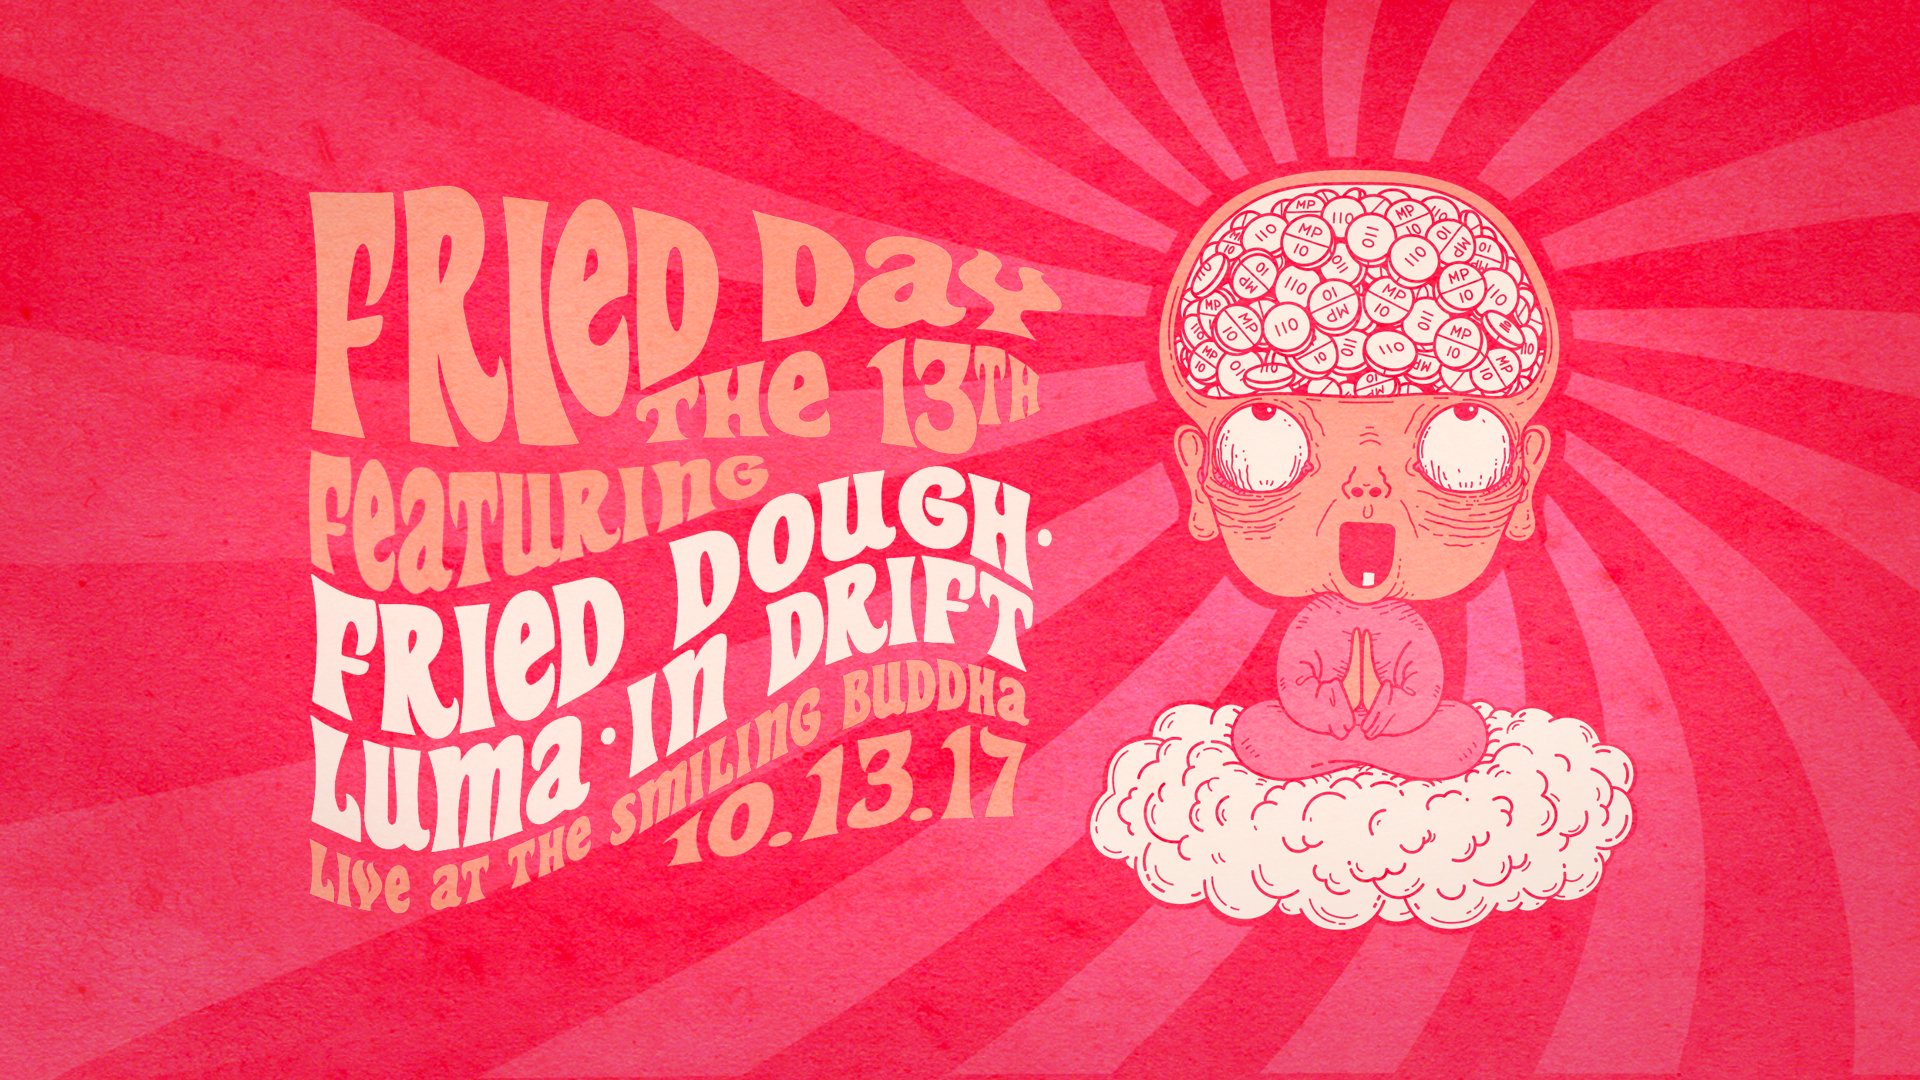 Fried Day the 13th!